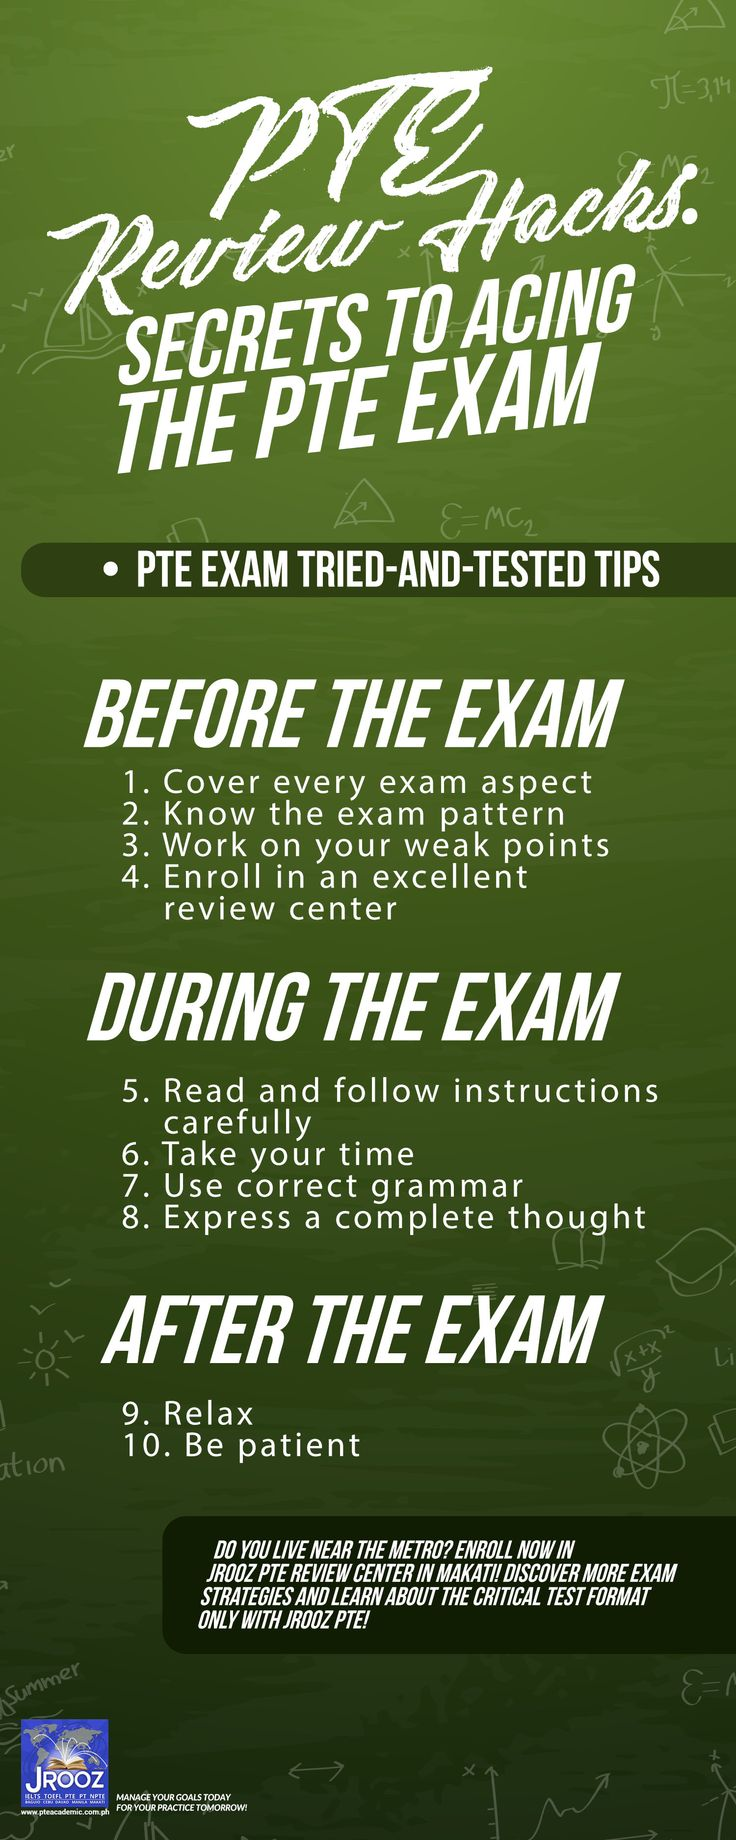 PTE Review Hacks: Secrets to Acing the PTE Exam - For most PTE students, exam success comes through working steadily toward their score goal. This is when PTE exam preparation schemes become crucial. It is vital that you study the critical points and acclimate to the demands of each test component to accomplish your score goal.